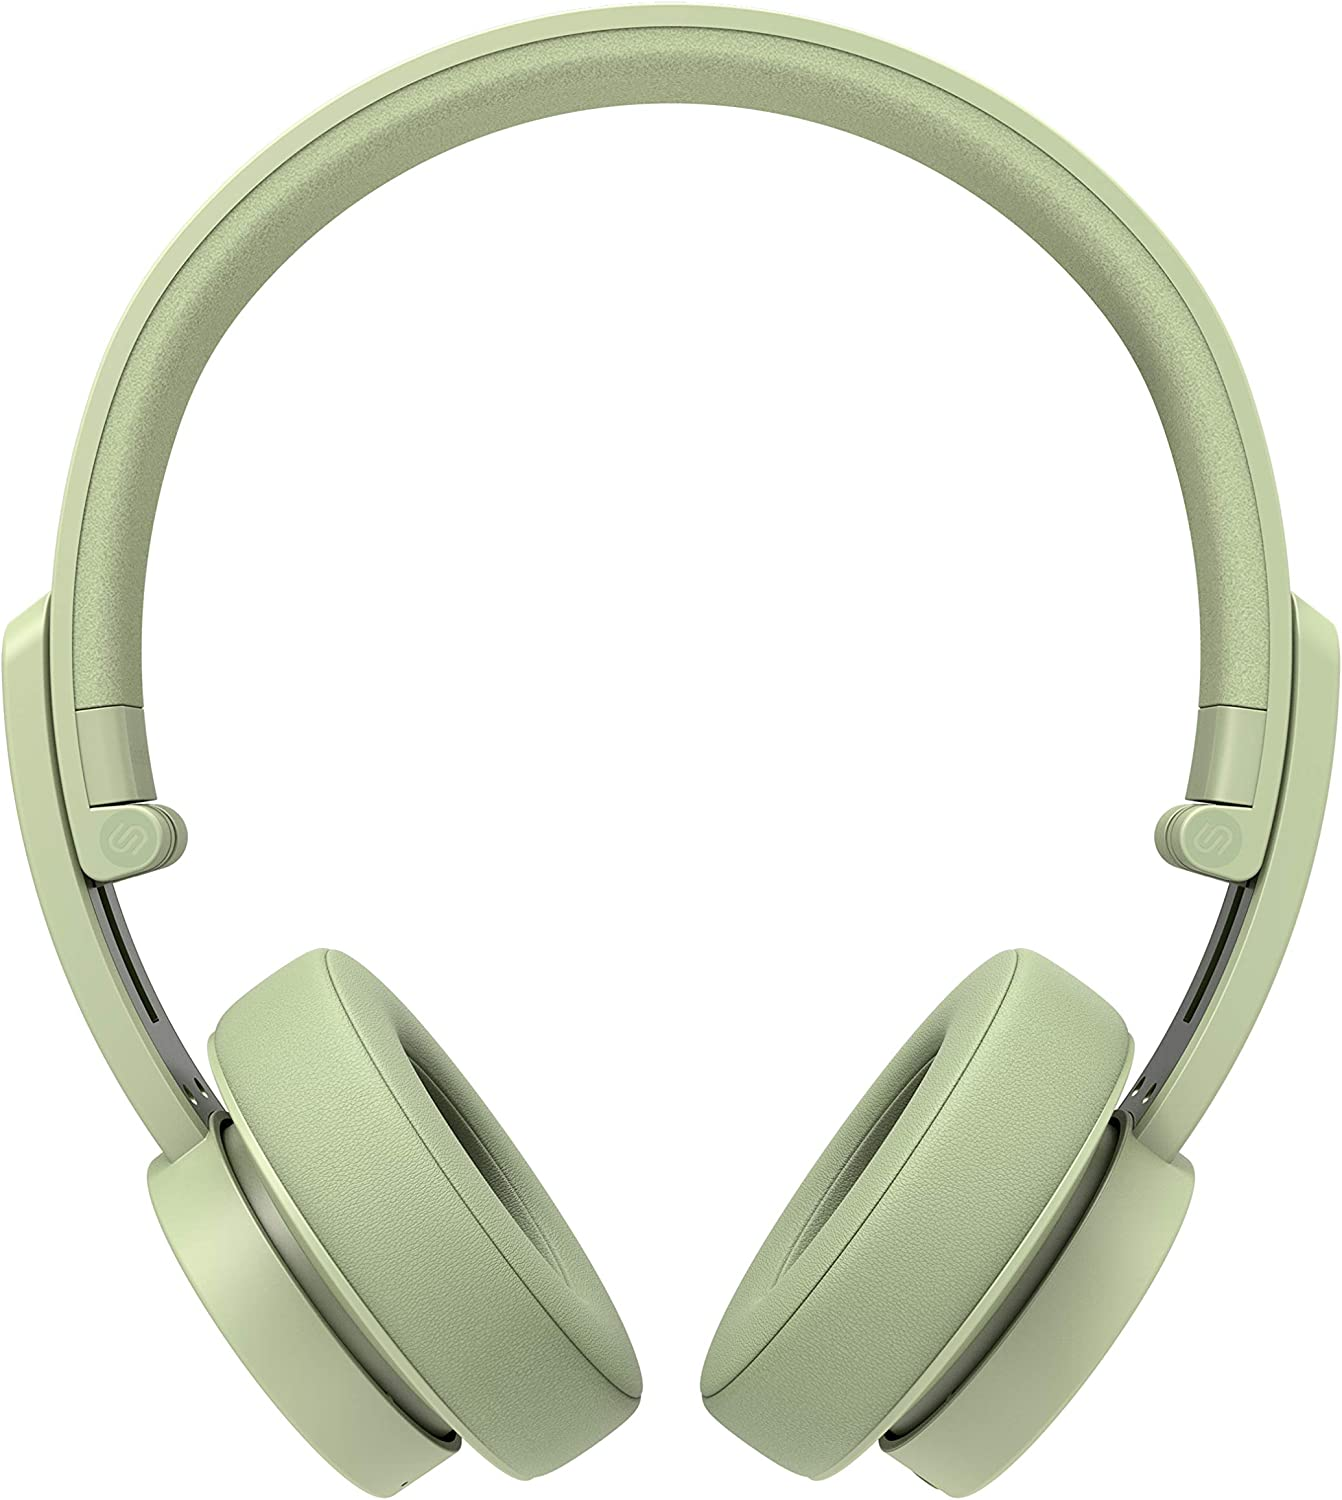 Urbanista Detroit Bluetooth On Ear Headphones, Up to 12 Hours Play Time, Call-Handling with Microphone - Spring Green